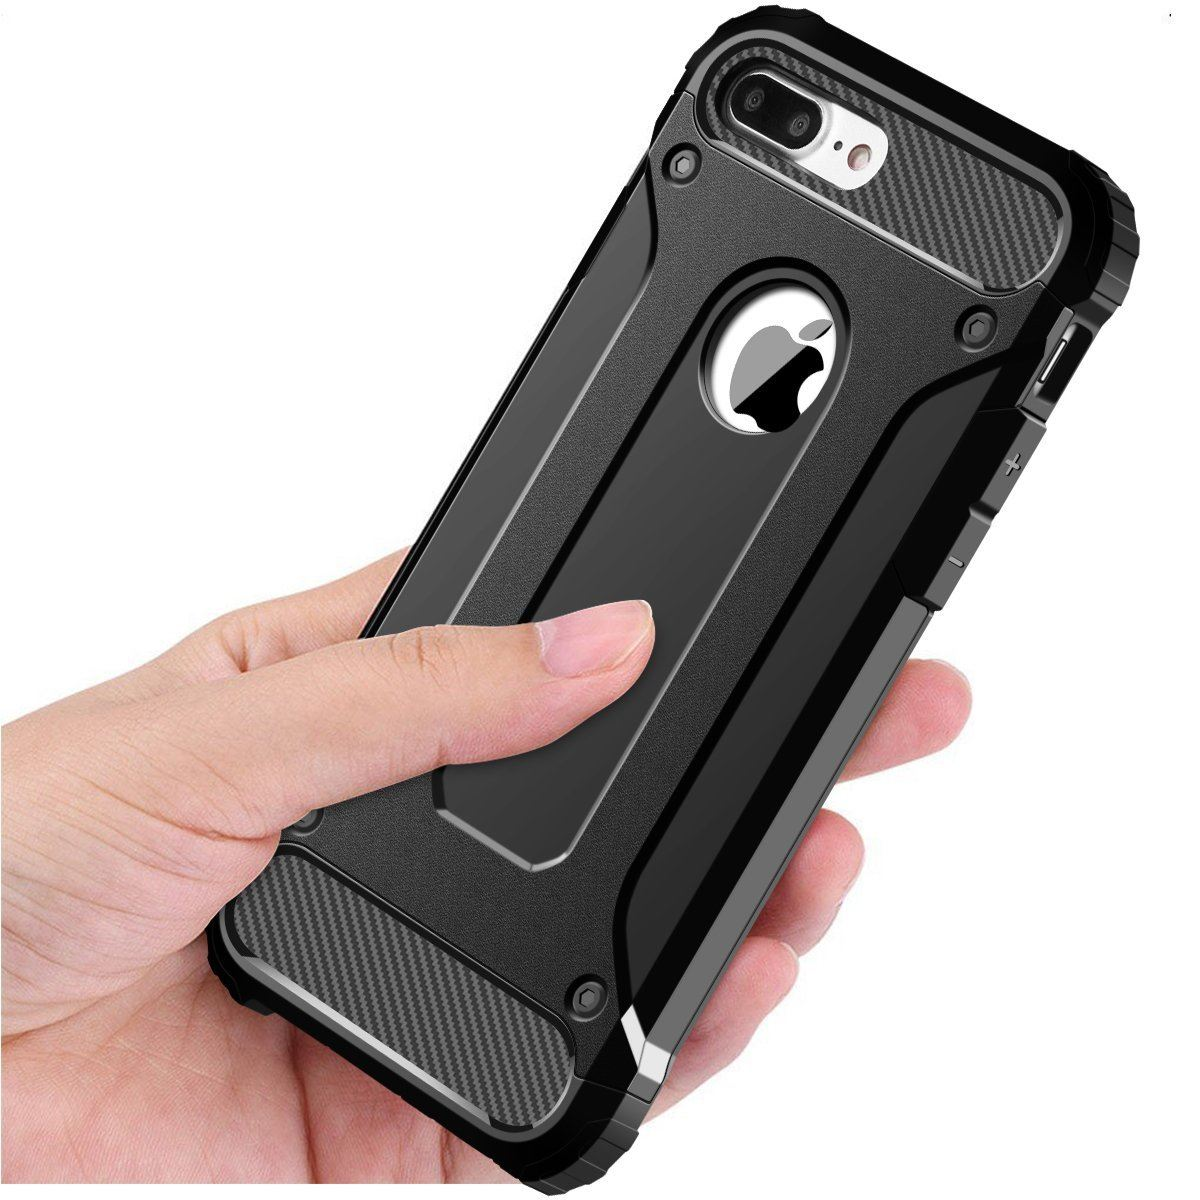 Hybrid-Armor-Shockproof-Rugged-Bumper-Case-For-Apple-iPhone-10-X-8-7-Plus-6s-5s miniature 28